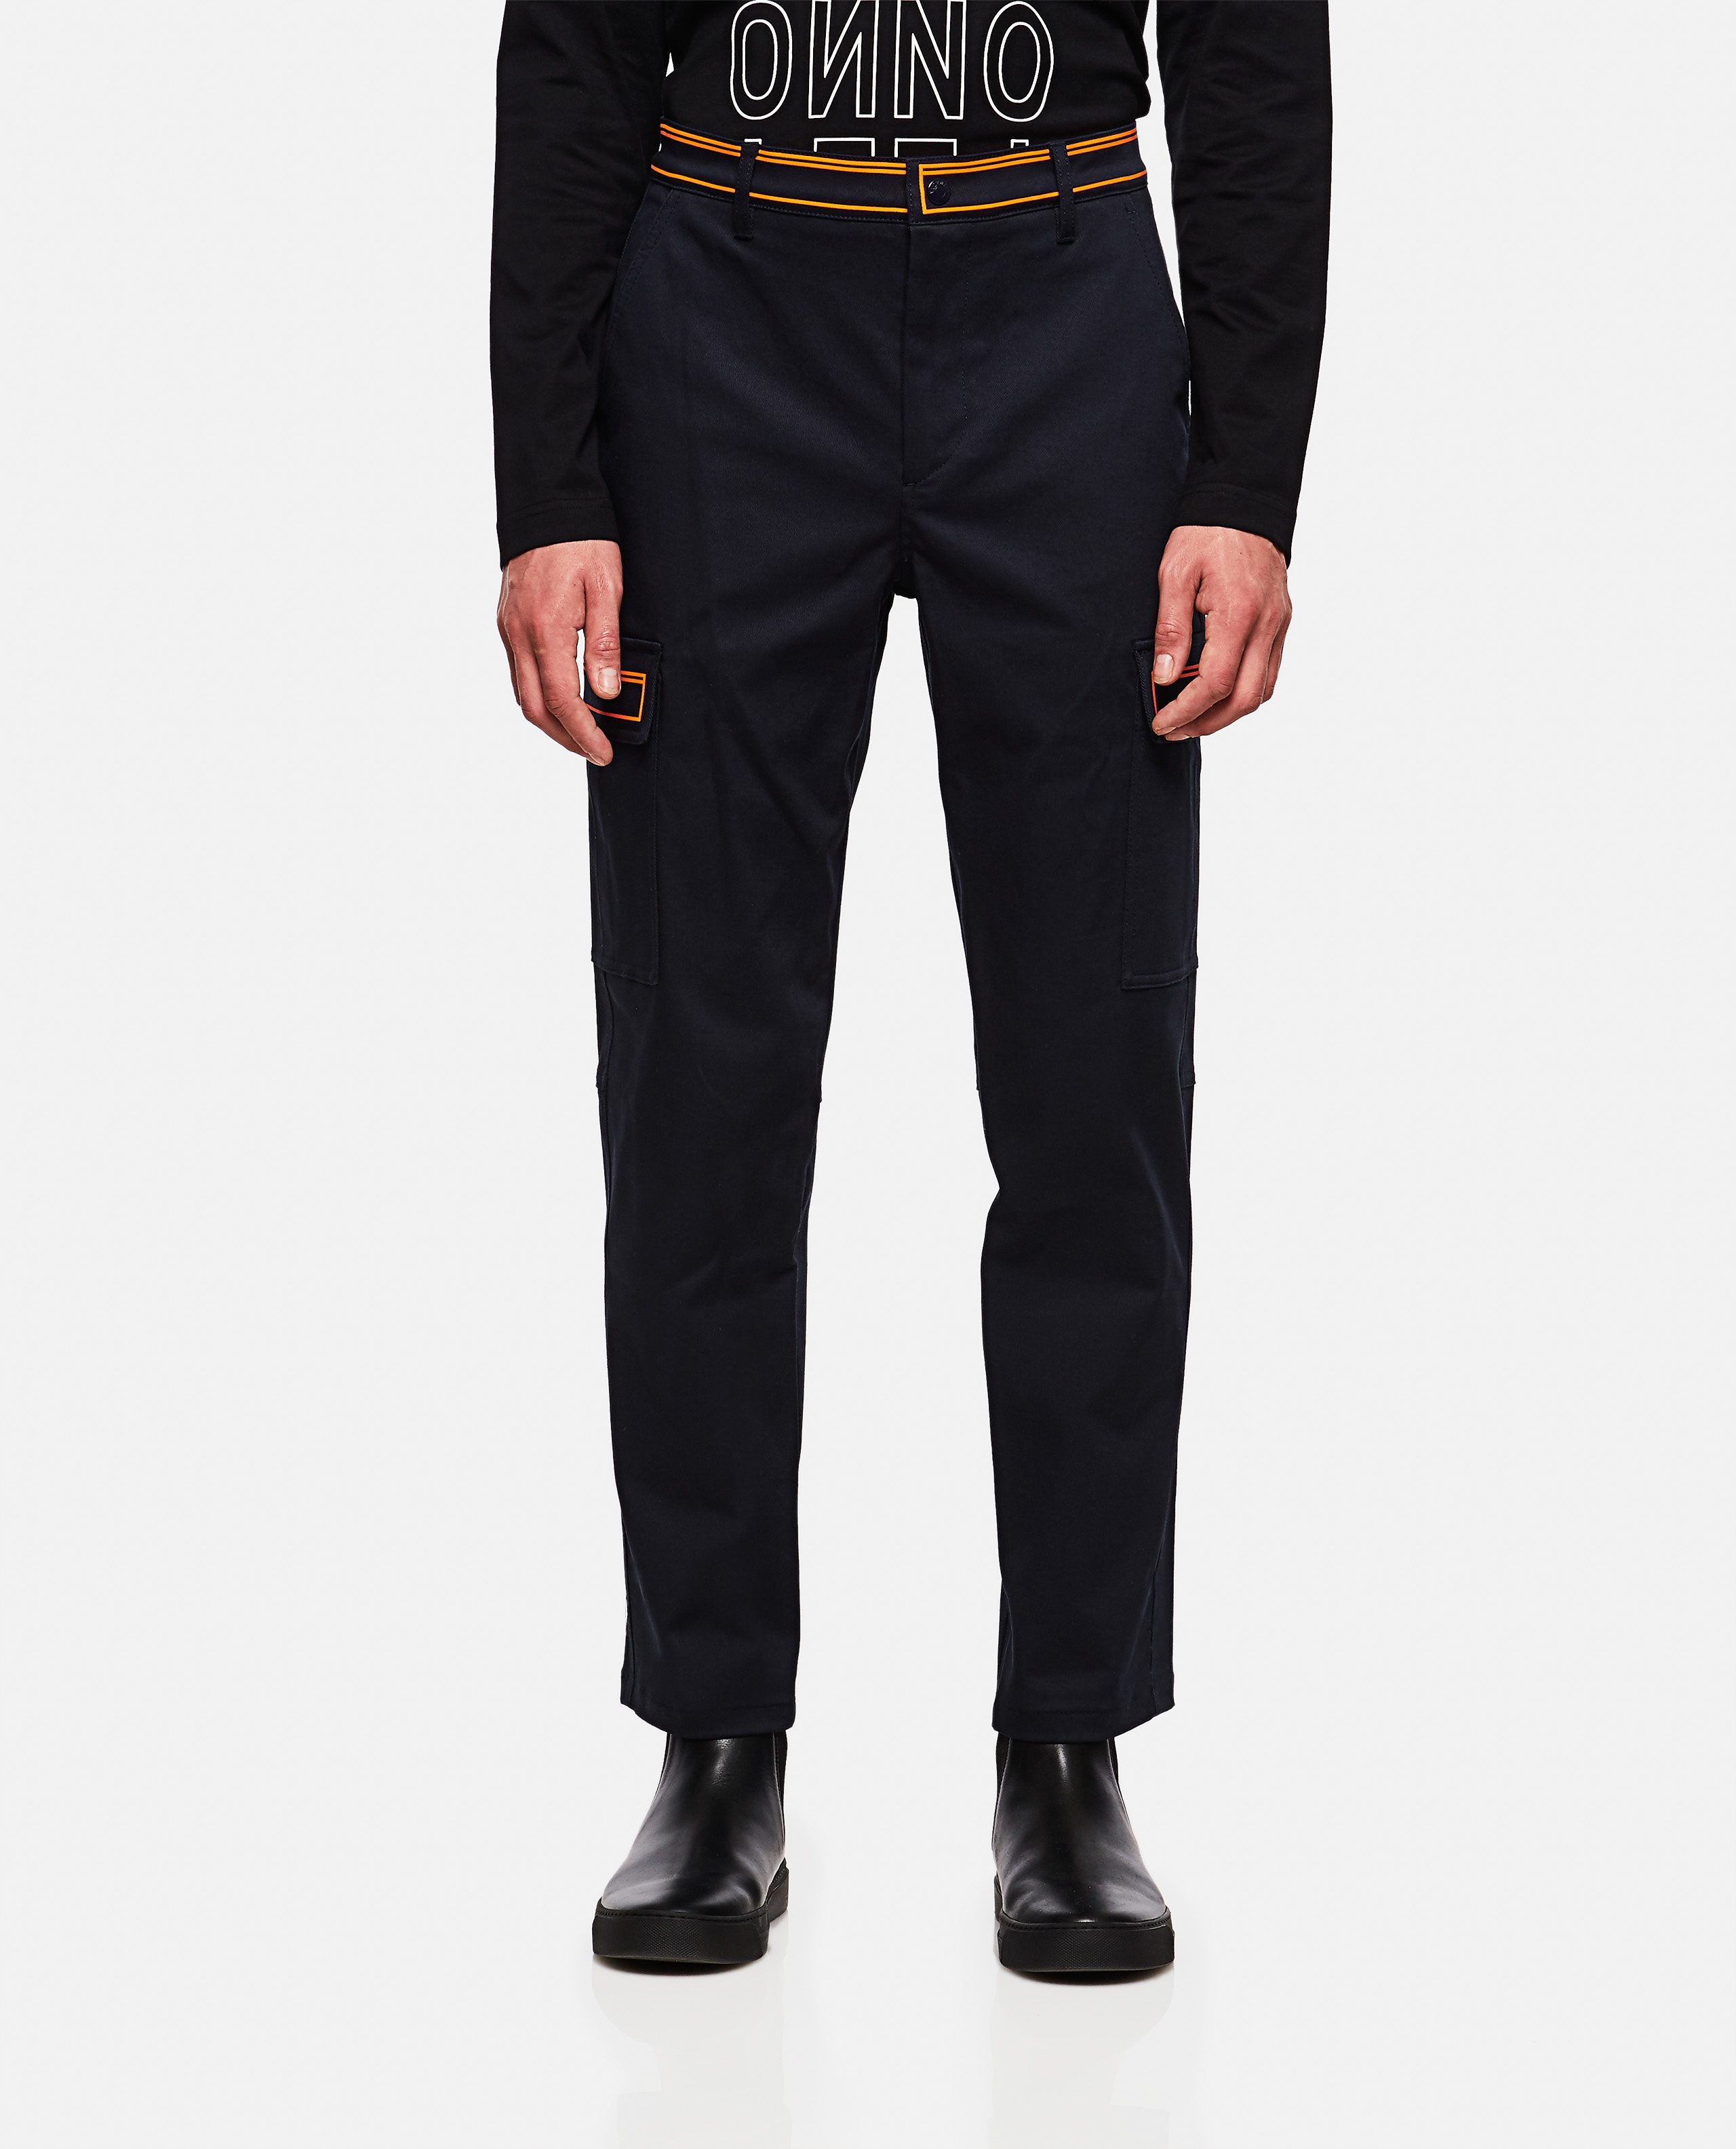 Trousers with contrasting detail Men Valentino 000263550038963 1